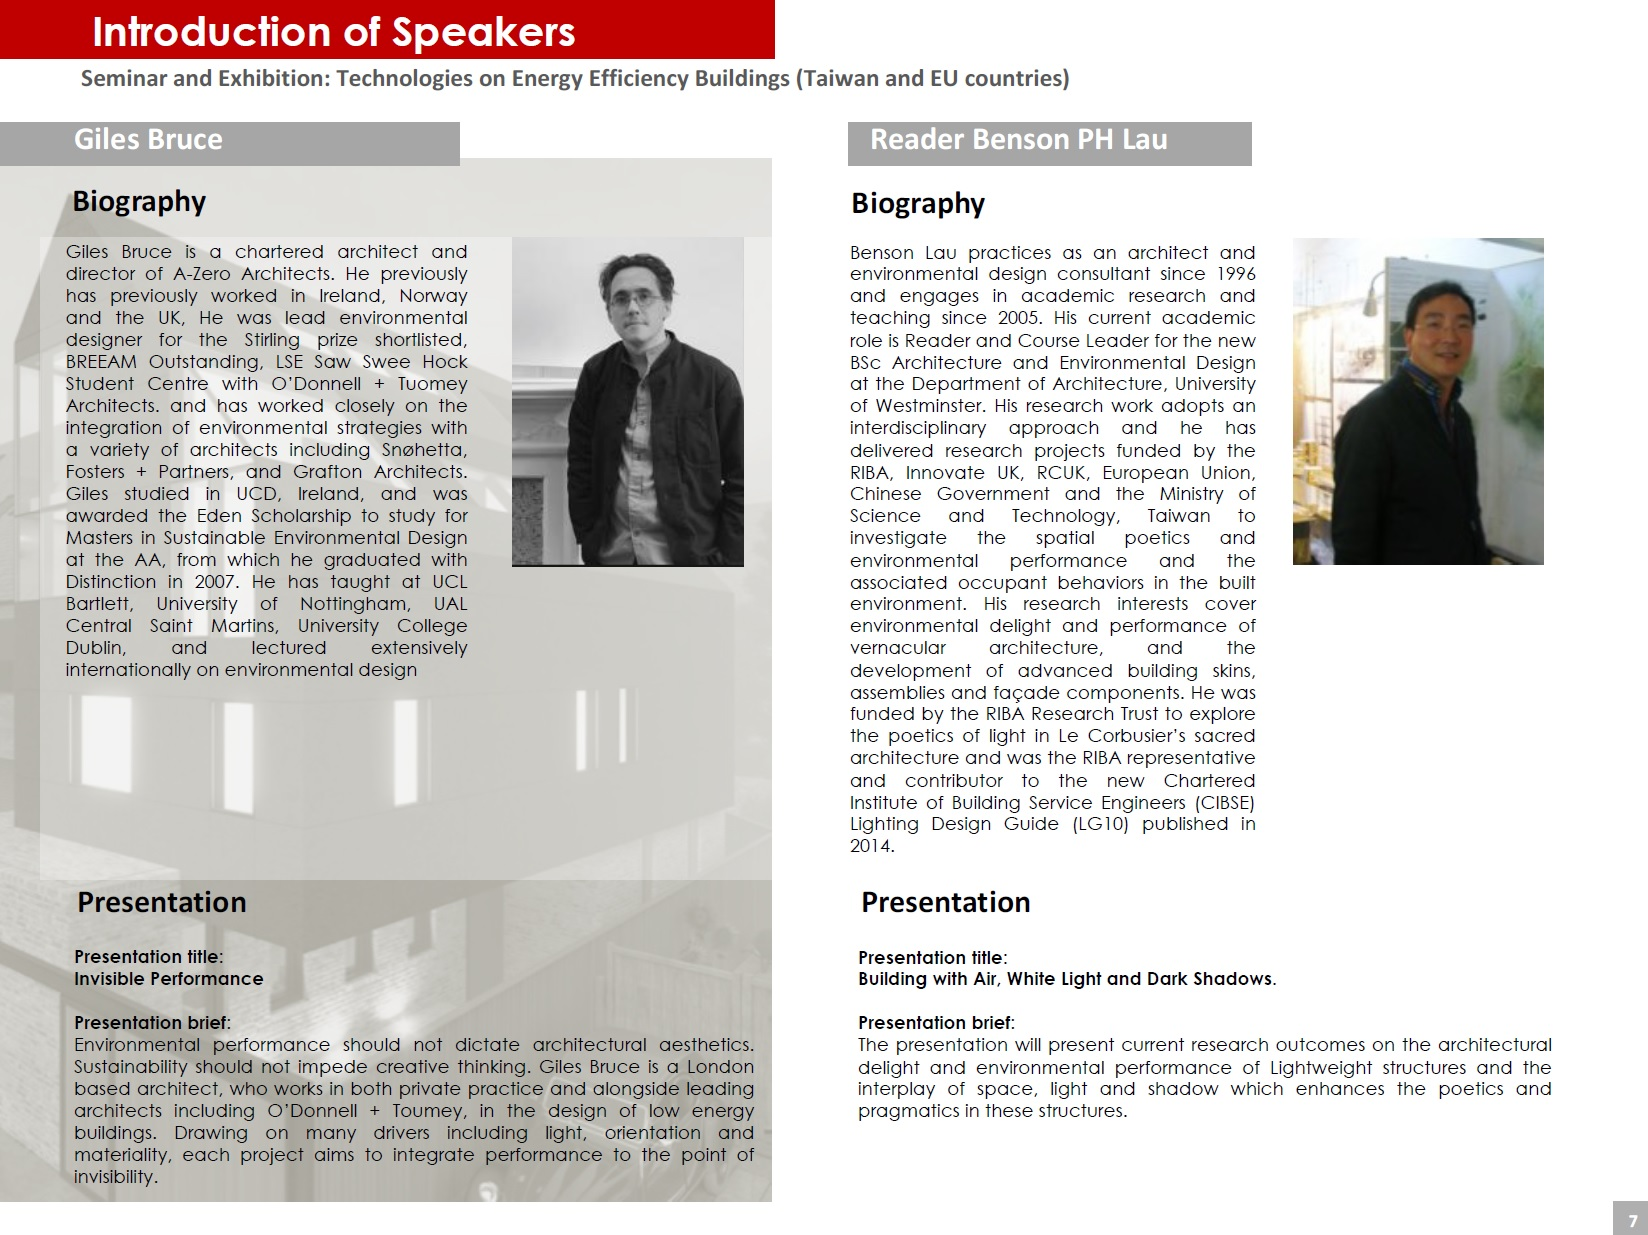 Page 7 (Introduction of Speakers)